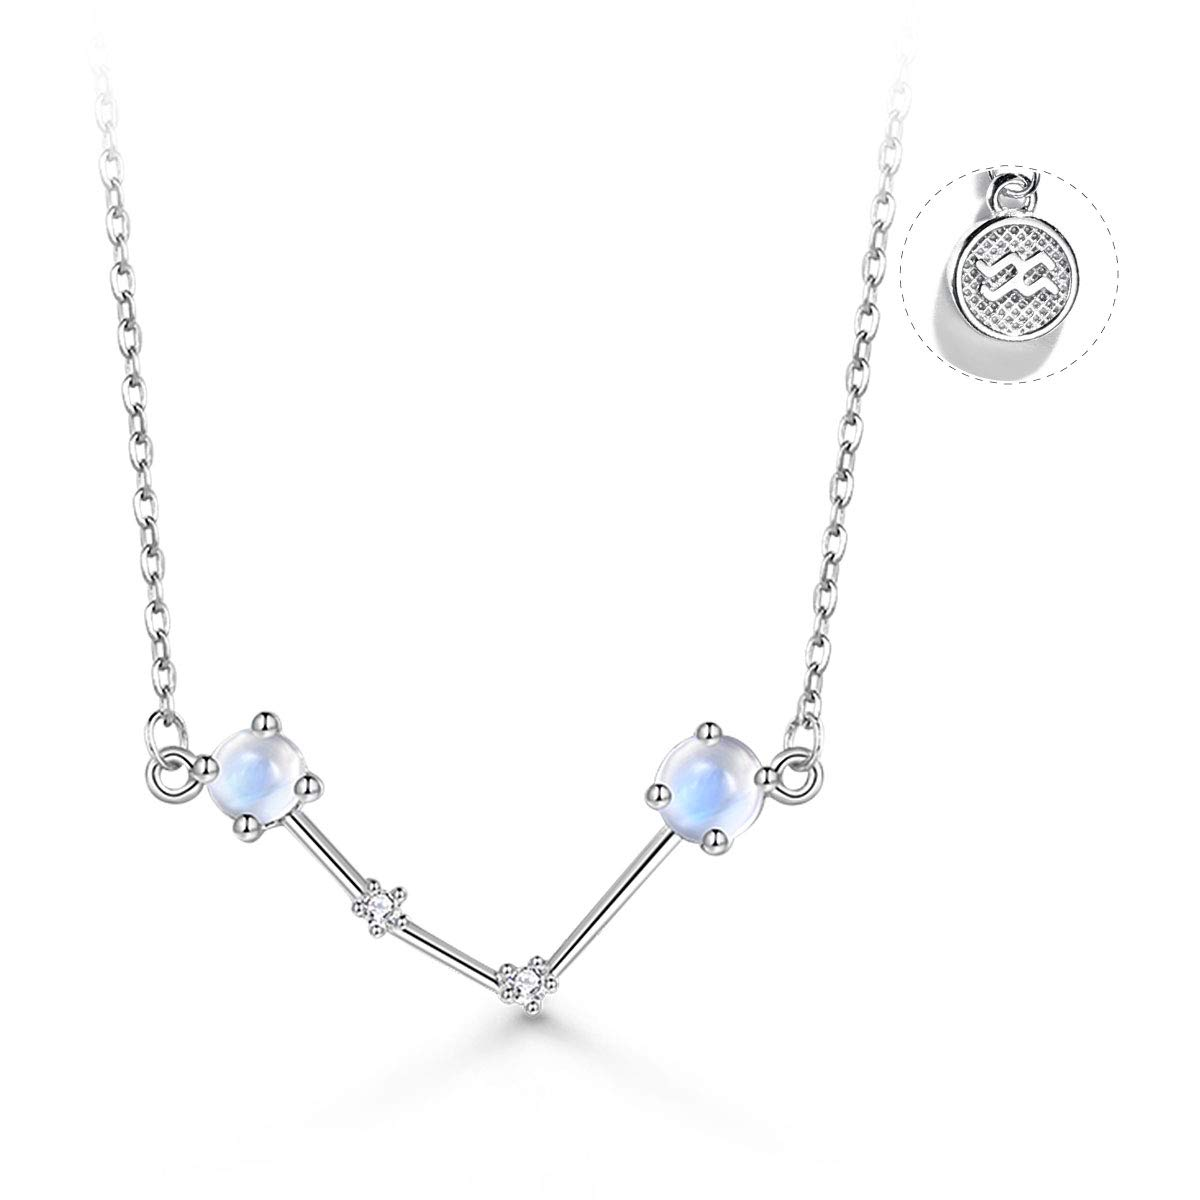 T400 925 Sterling Silver Horoscope Pendant Necklace   Zodiac Sign 12 Constellation Moonstone Birthday Gift for Women Girls